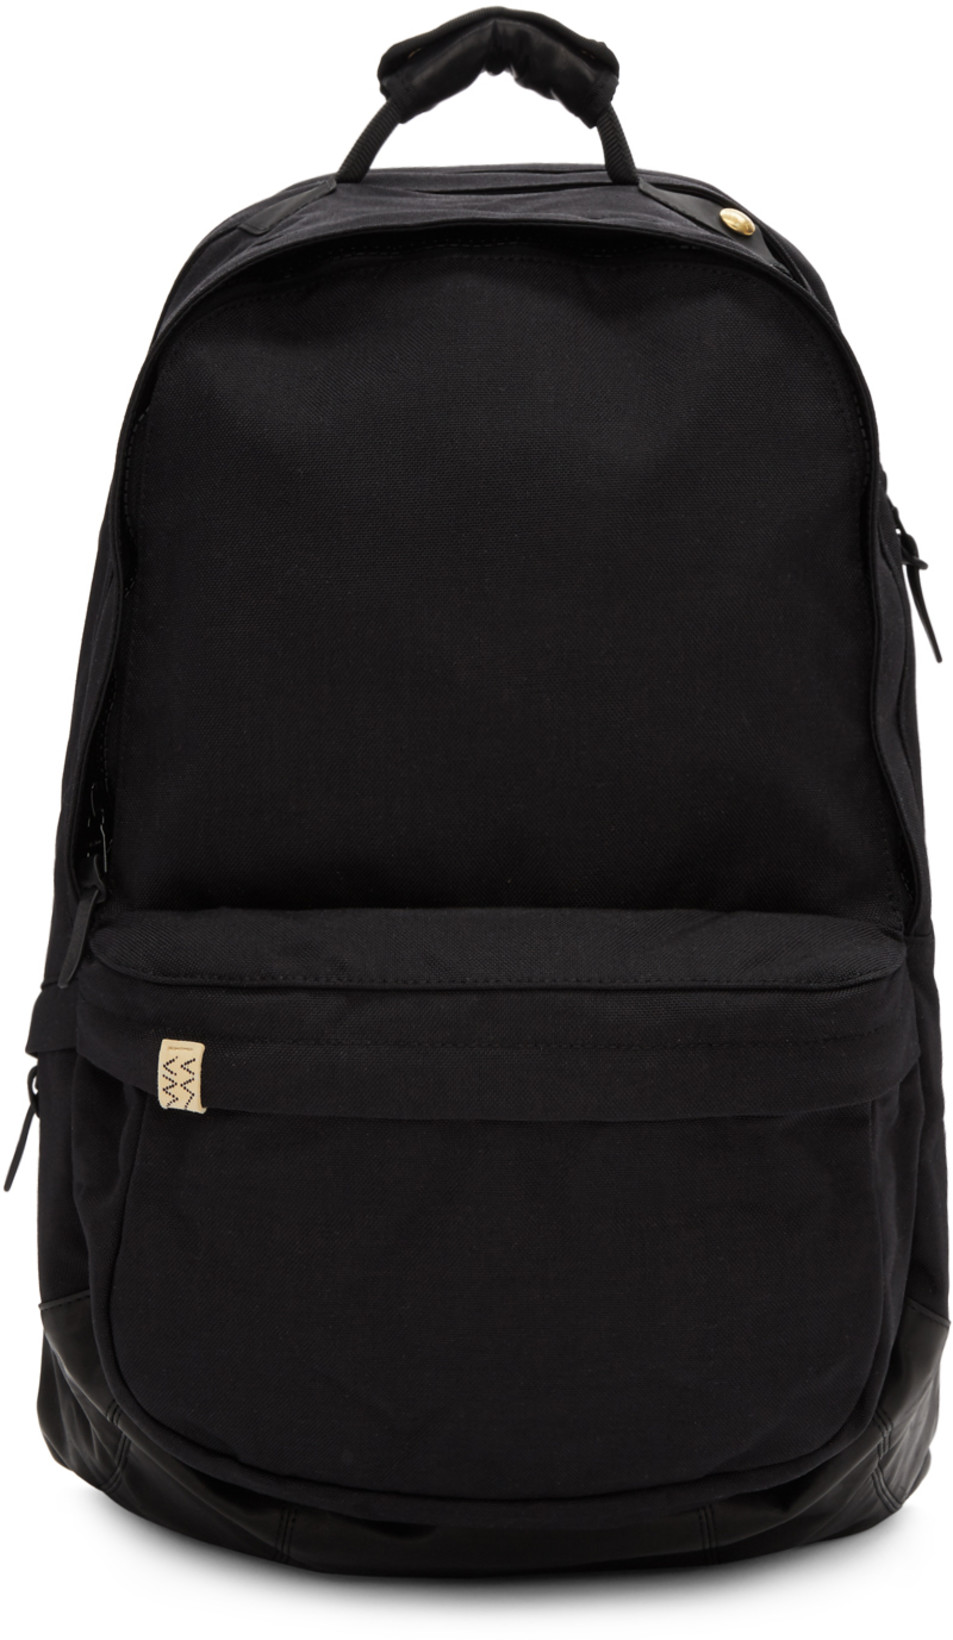 Cordura 22L, black by Visvim